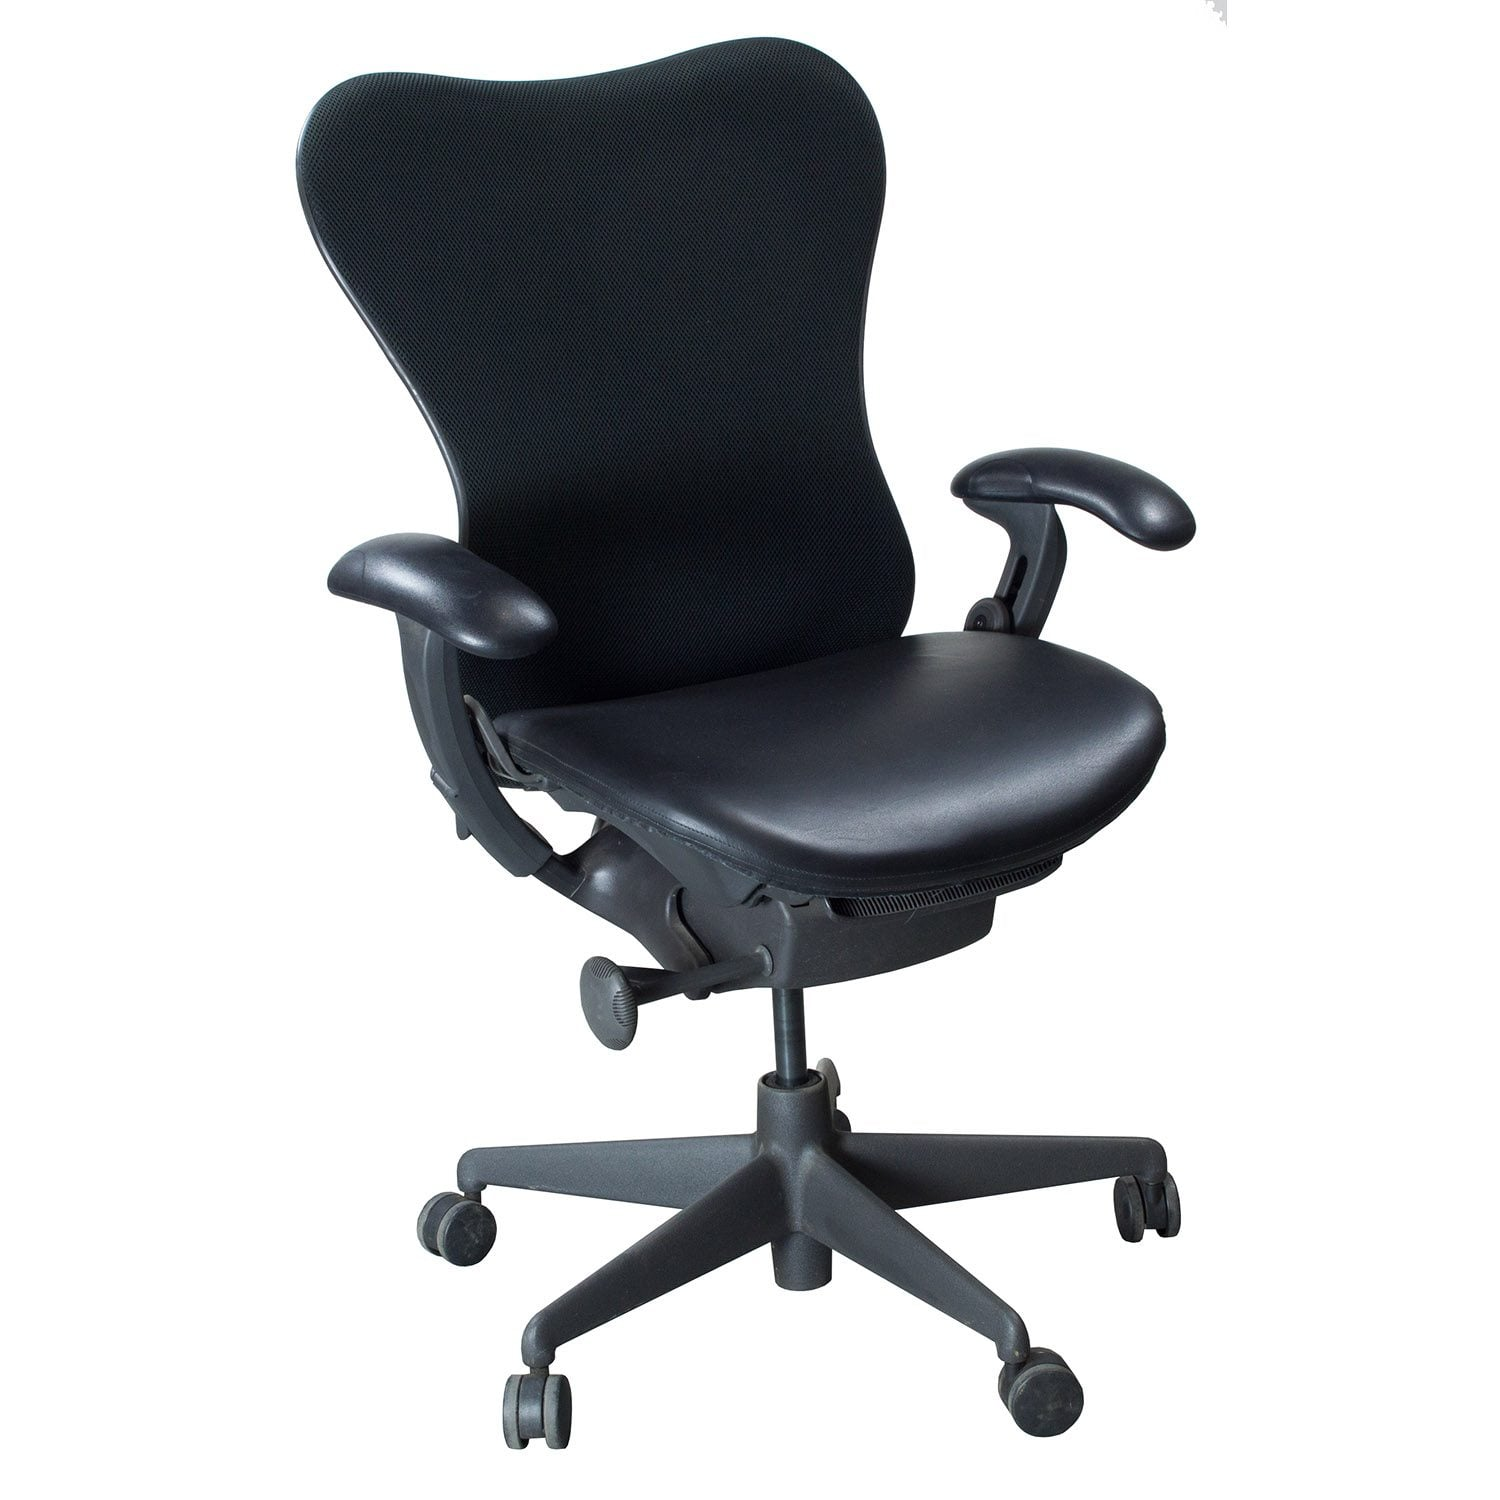 herman miller used office chairs chair cane supplies uk mirra leather seat task black